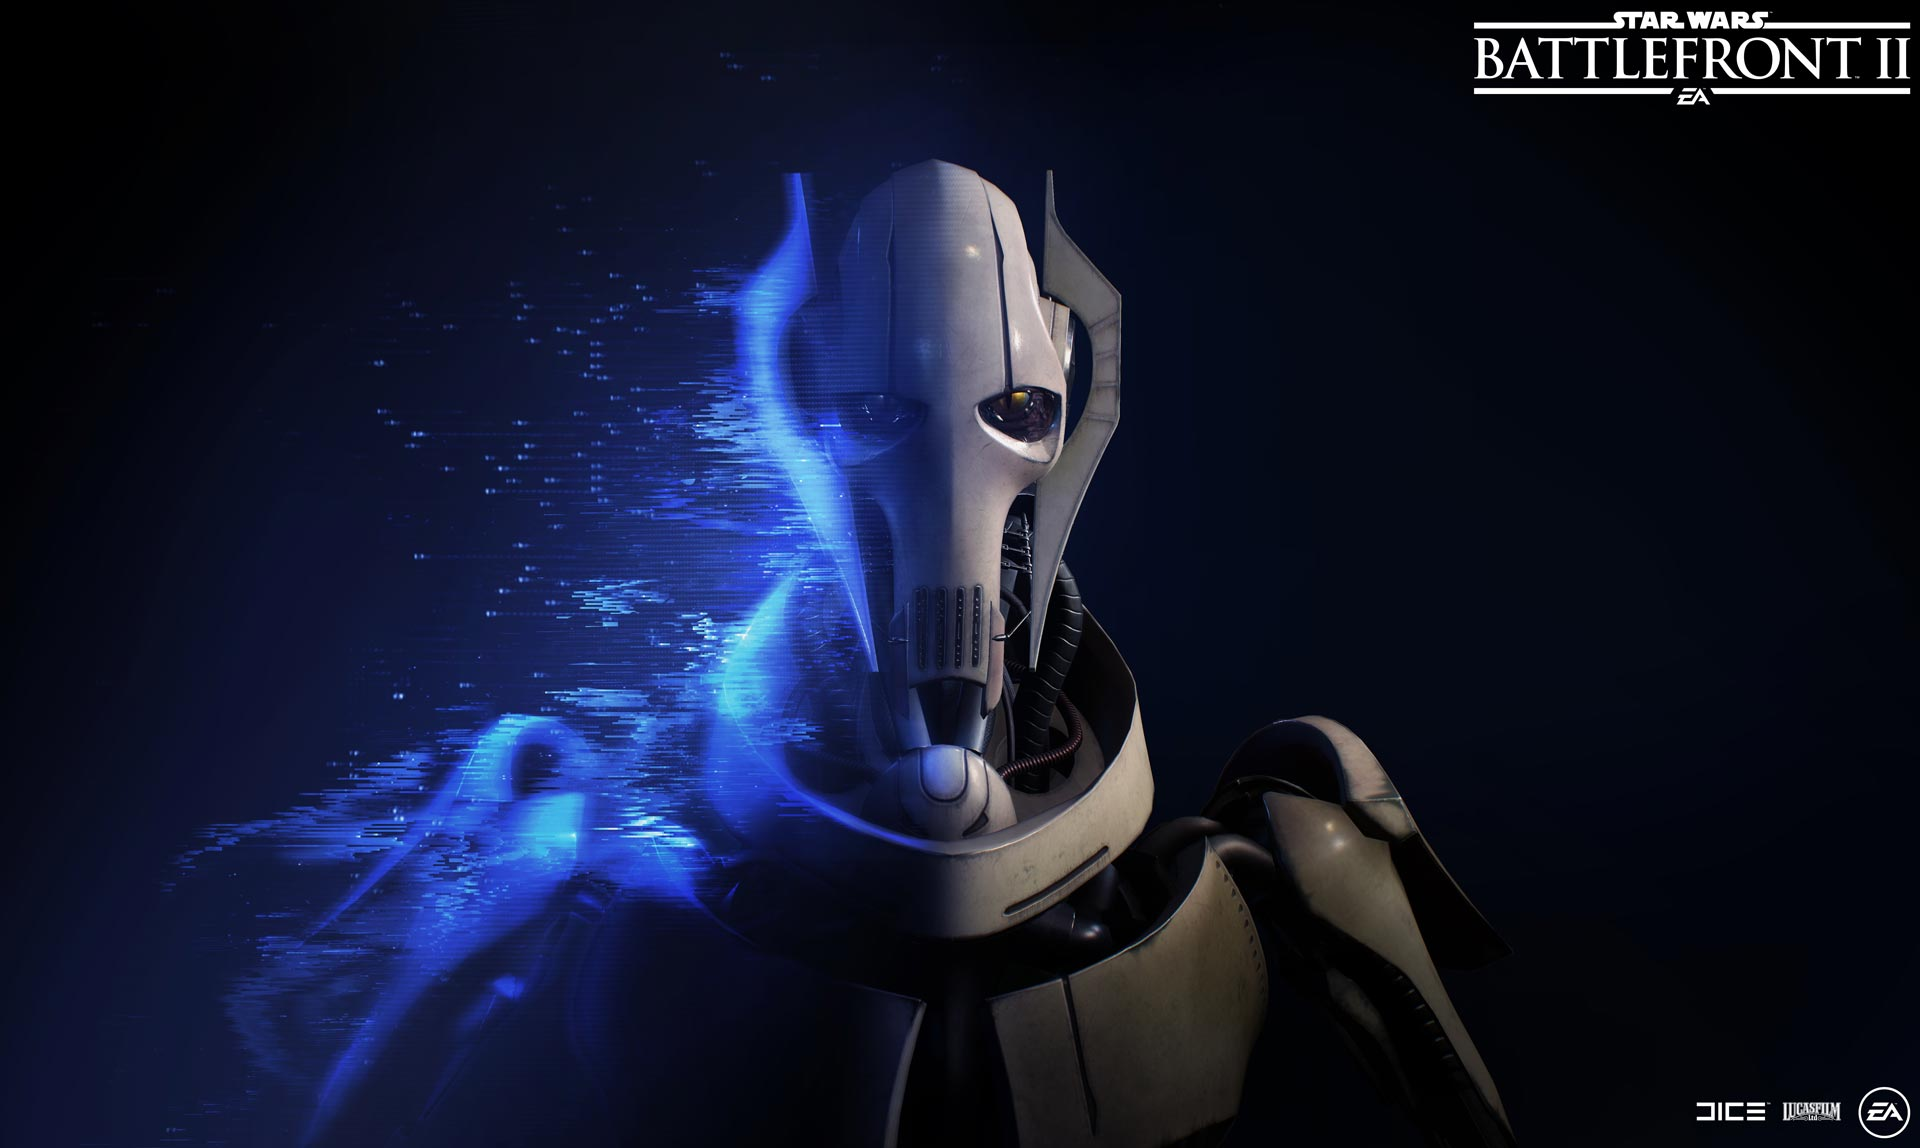 Battlefront 2: General Grievous.